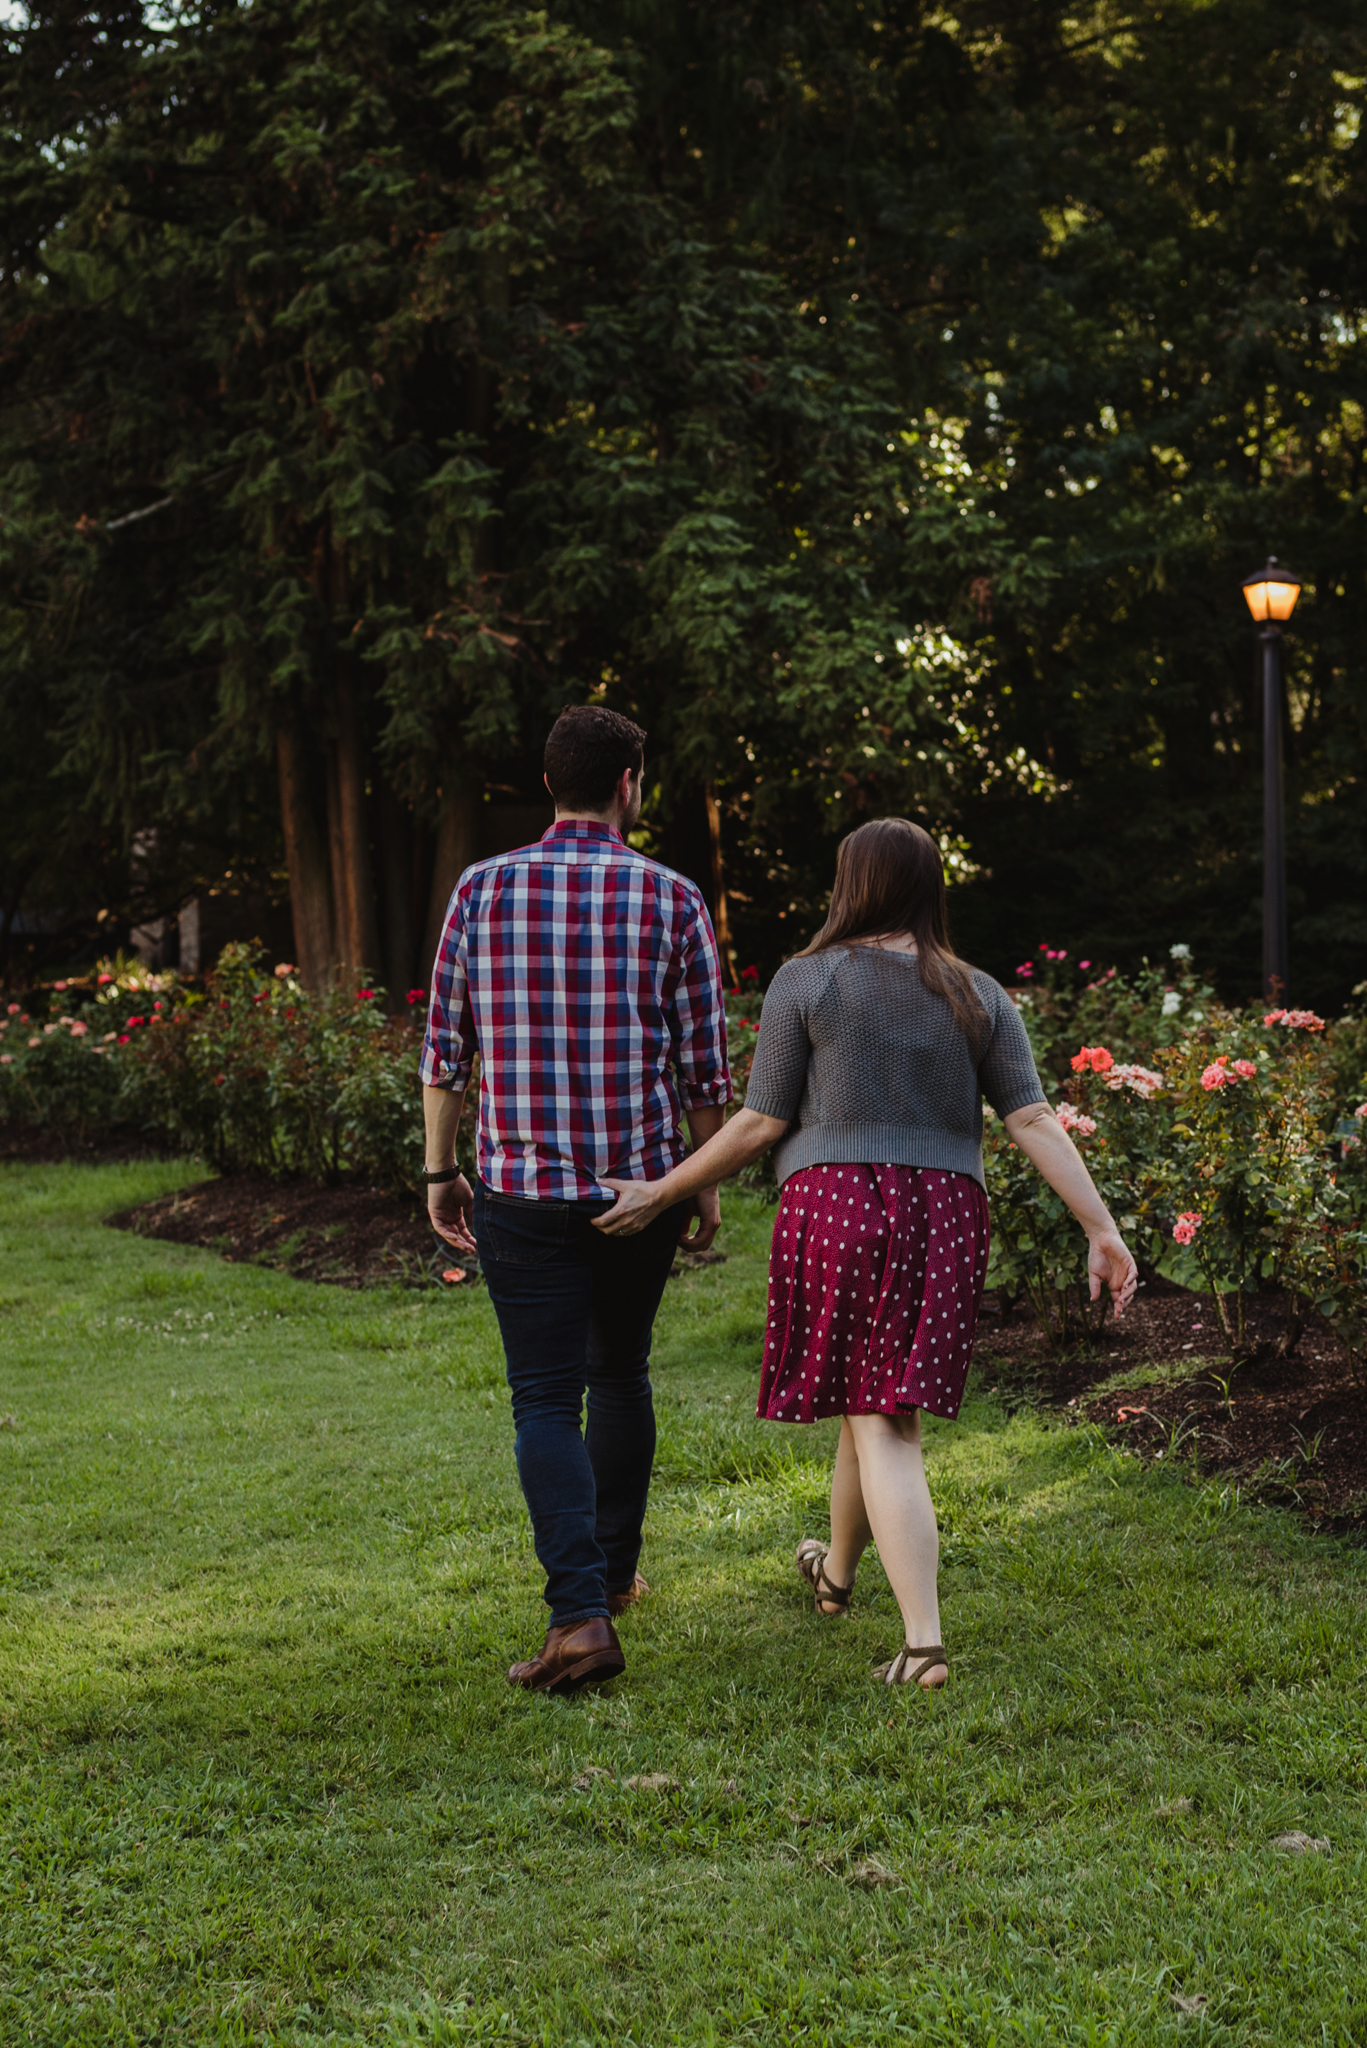 The bride to be grabs her fiance's but as they walk in the Raleigh Rose Garden during their engagement session with Rose Trail Images.